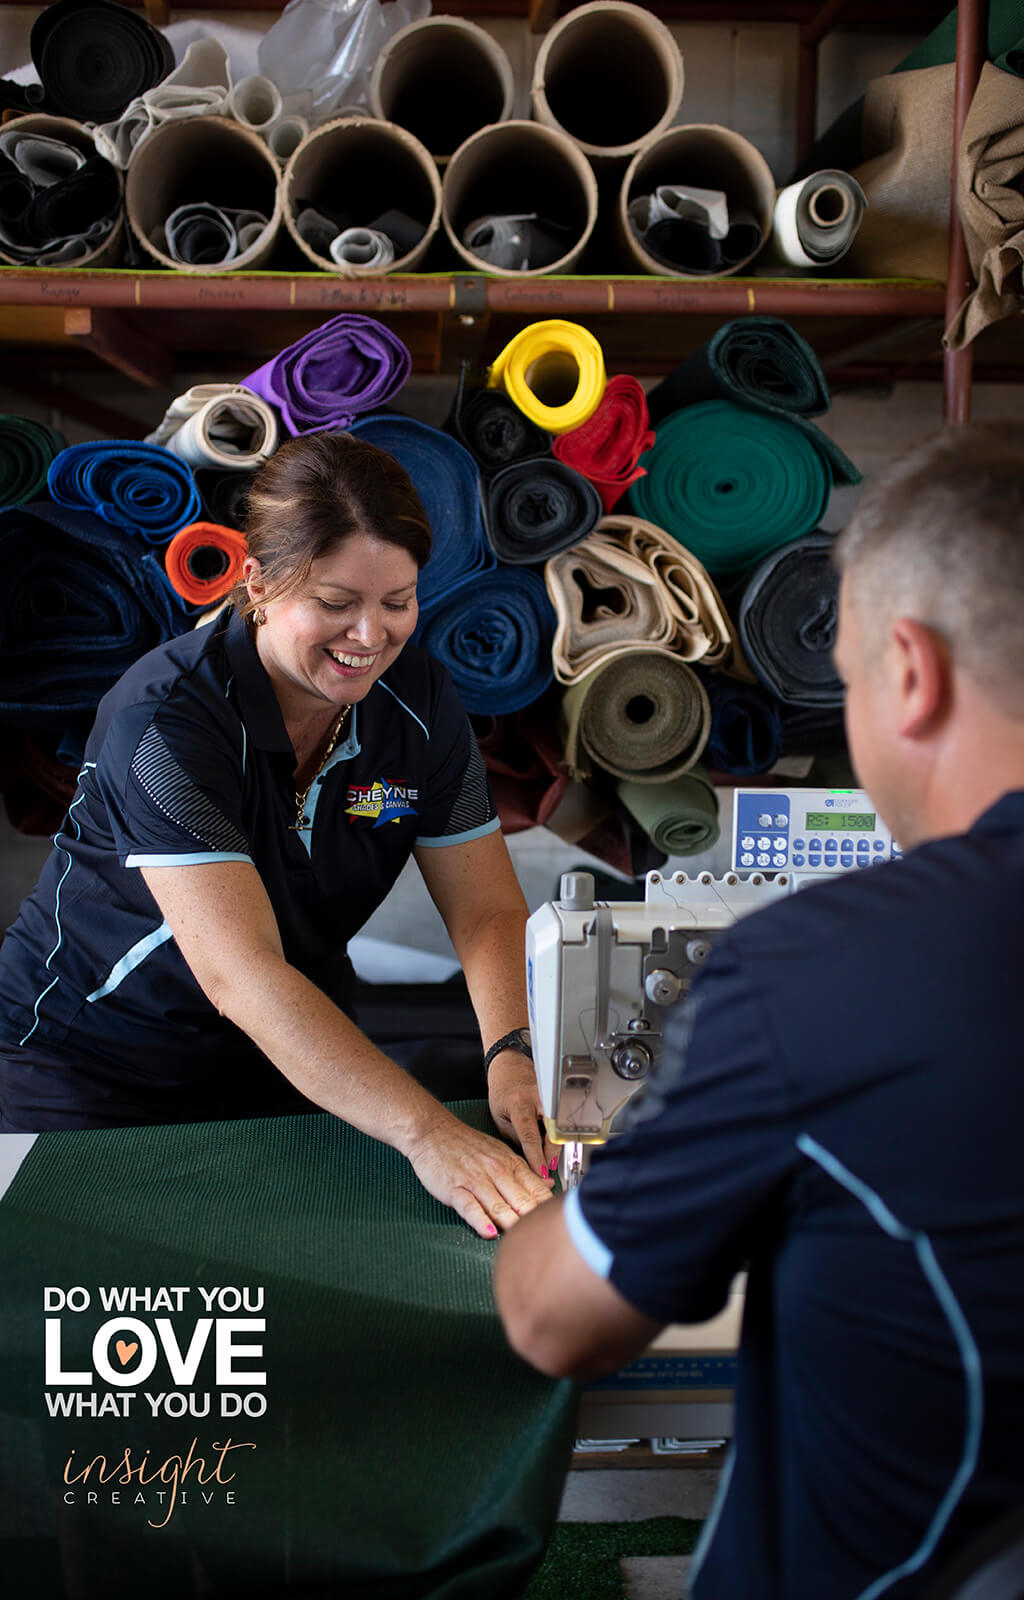 commercial photography by Townsville photographer Megan Marano of Insight Creative